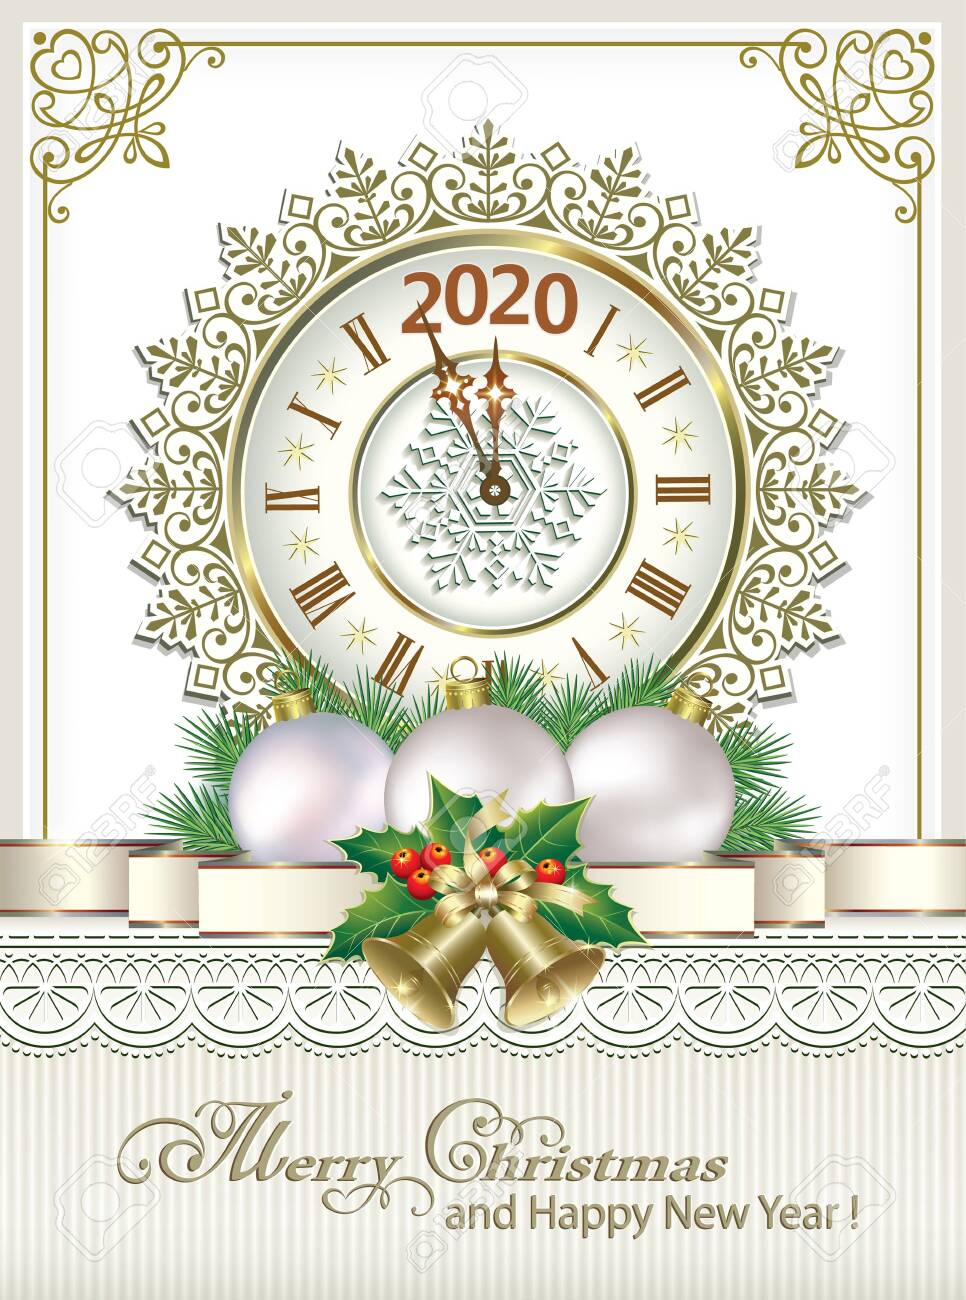 2020 Merry Christmas And Happy New Year. Greeting Card With Clock